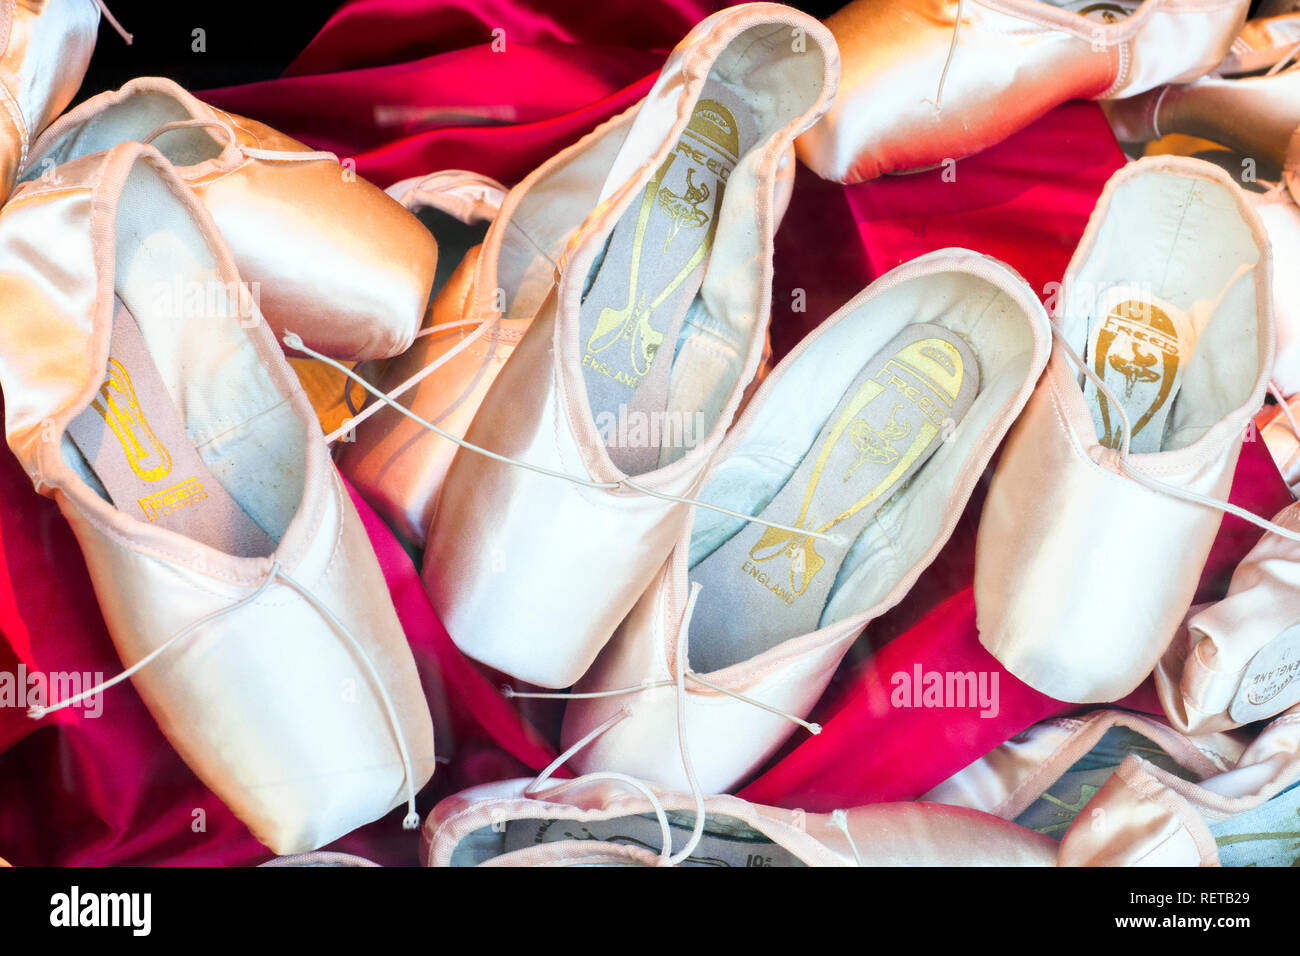 Pink ballet pointe shoes - London, England - Stock Image